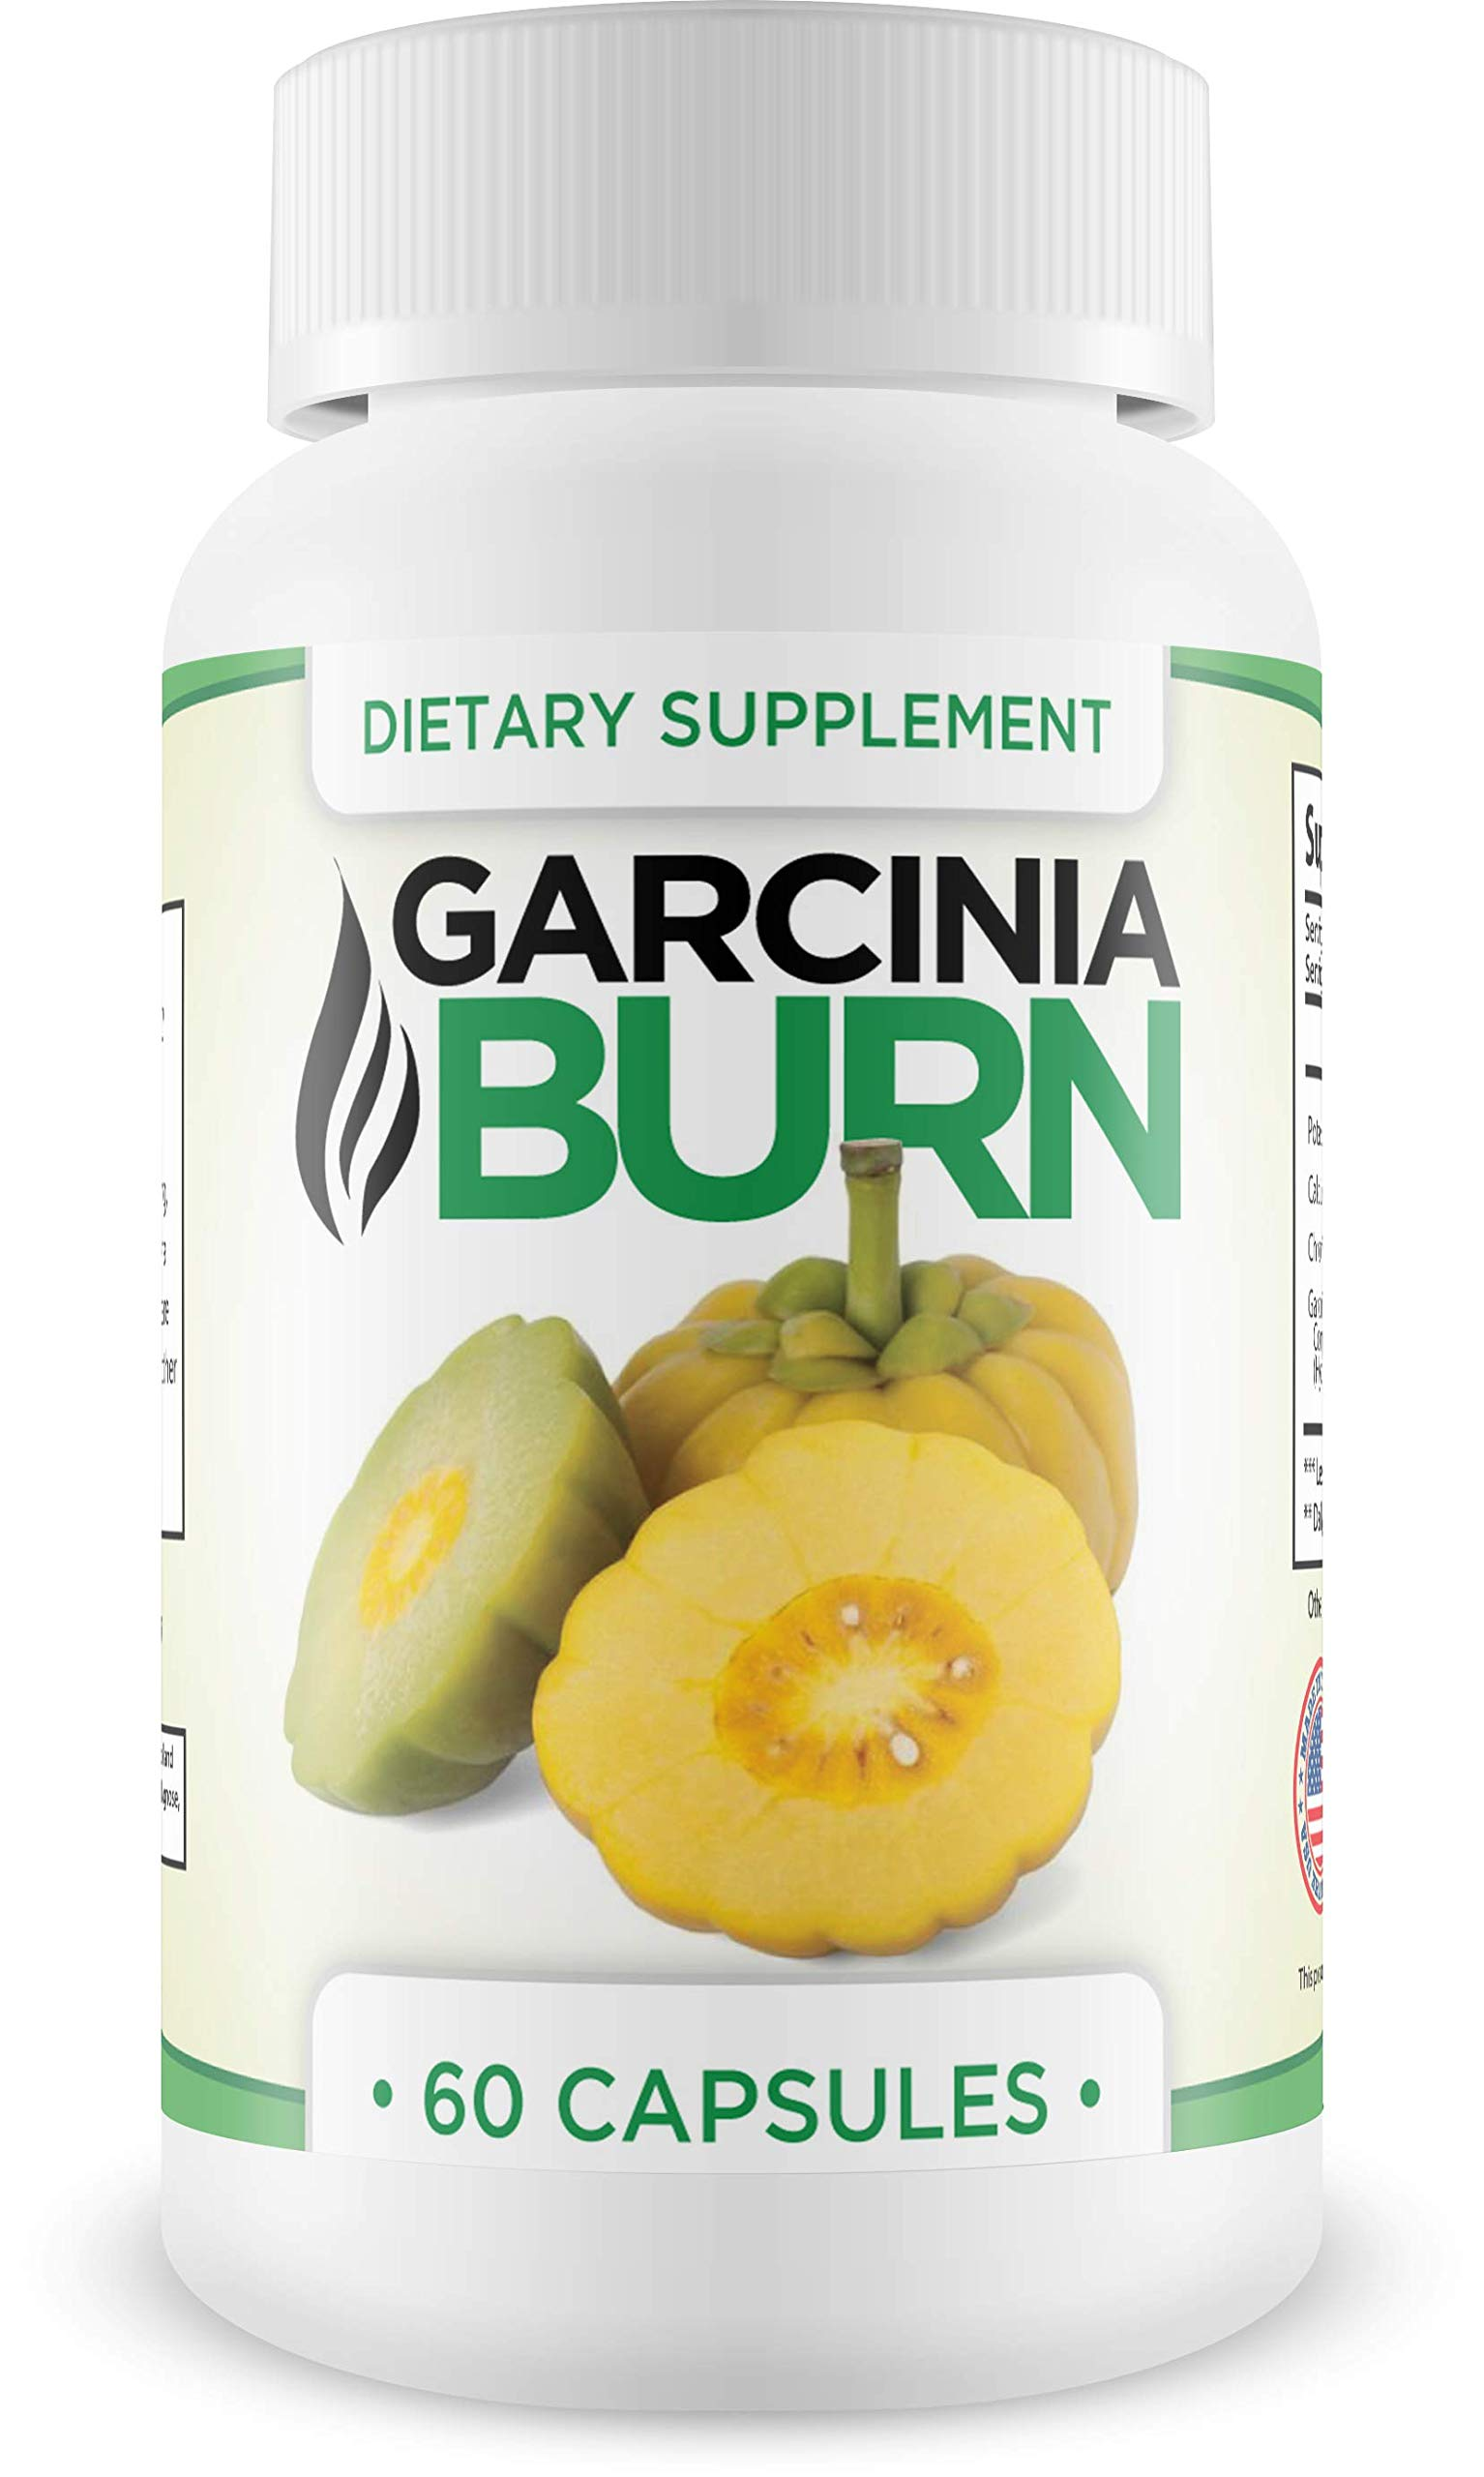 Garcinia Burn- Dietary Supplement Weight Loss Supplement and Appetite Suppressant, Metabolism Booster, Carb Blocker & Belly Fat Burner for Men and Women. 100% All Natural & Non-GMO. Made in The USA by BURN Supplements